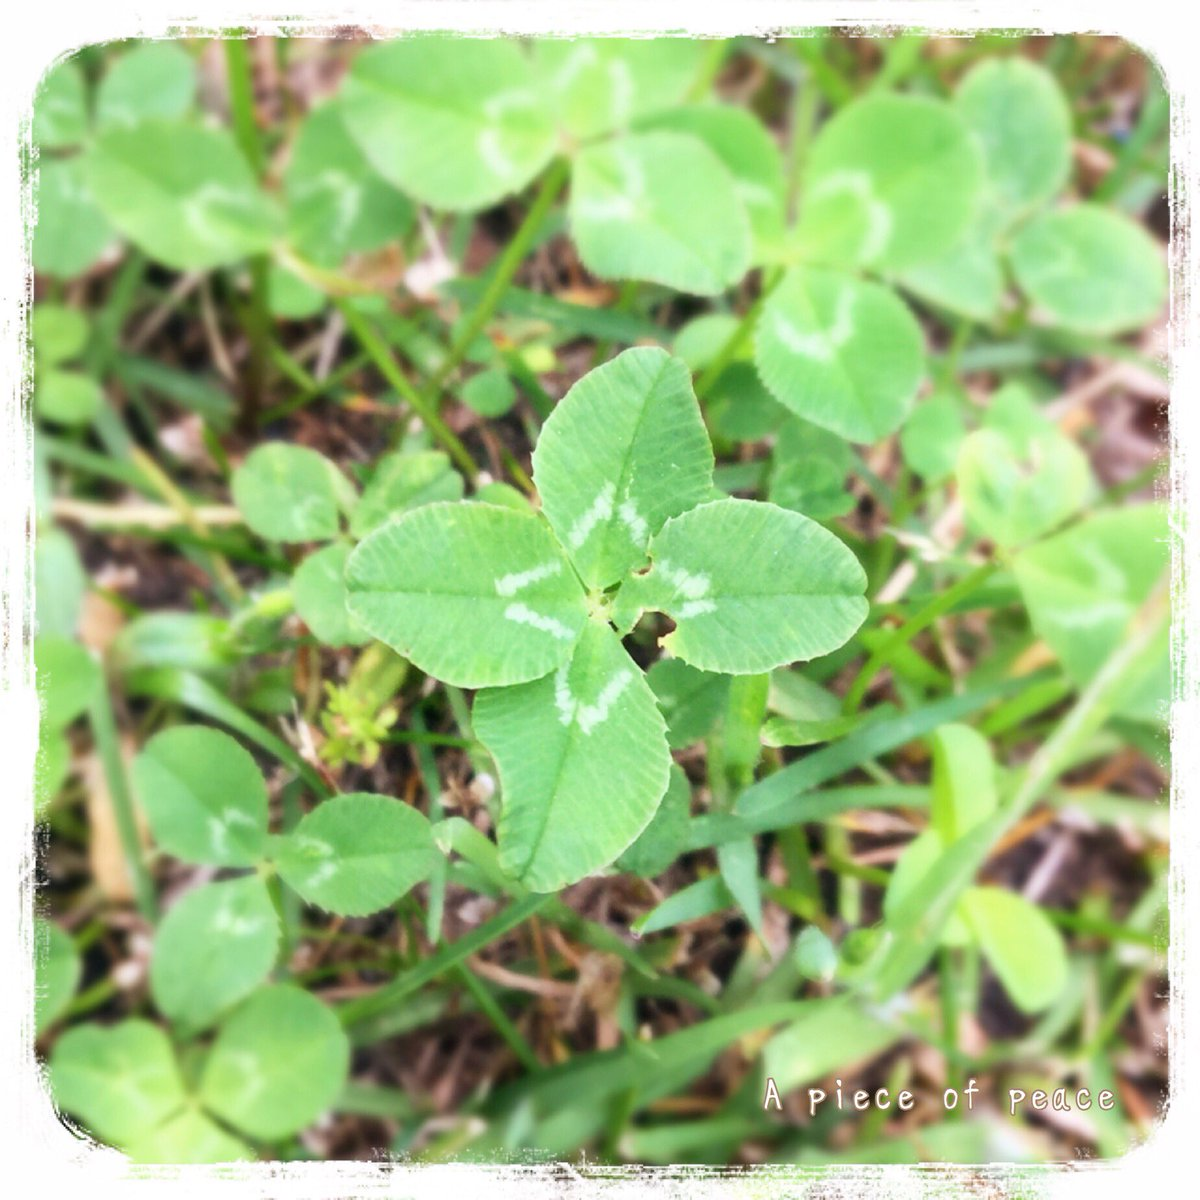 I hope the world is peaceful. #白詰草 #四つ葉のクローバー #fourleafclover #clover #love #NoWar #Peace #pray #평화 #frieden #和平 #平和 #pace #rauha #мир #paix <br>http://pic.twitter.com/CWsKQYW1wO